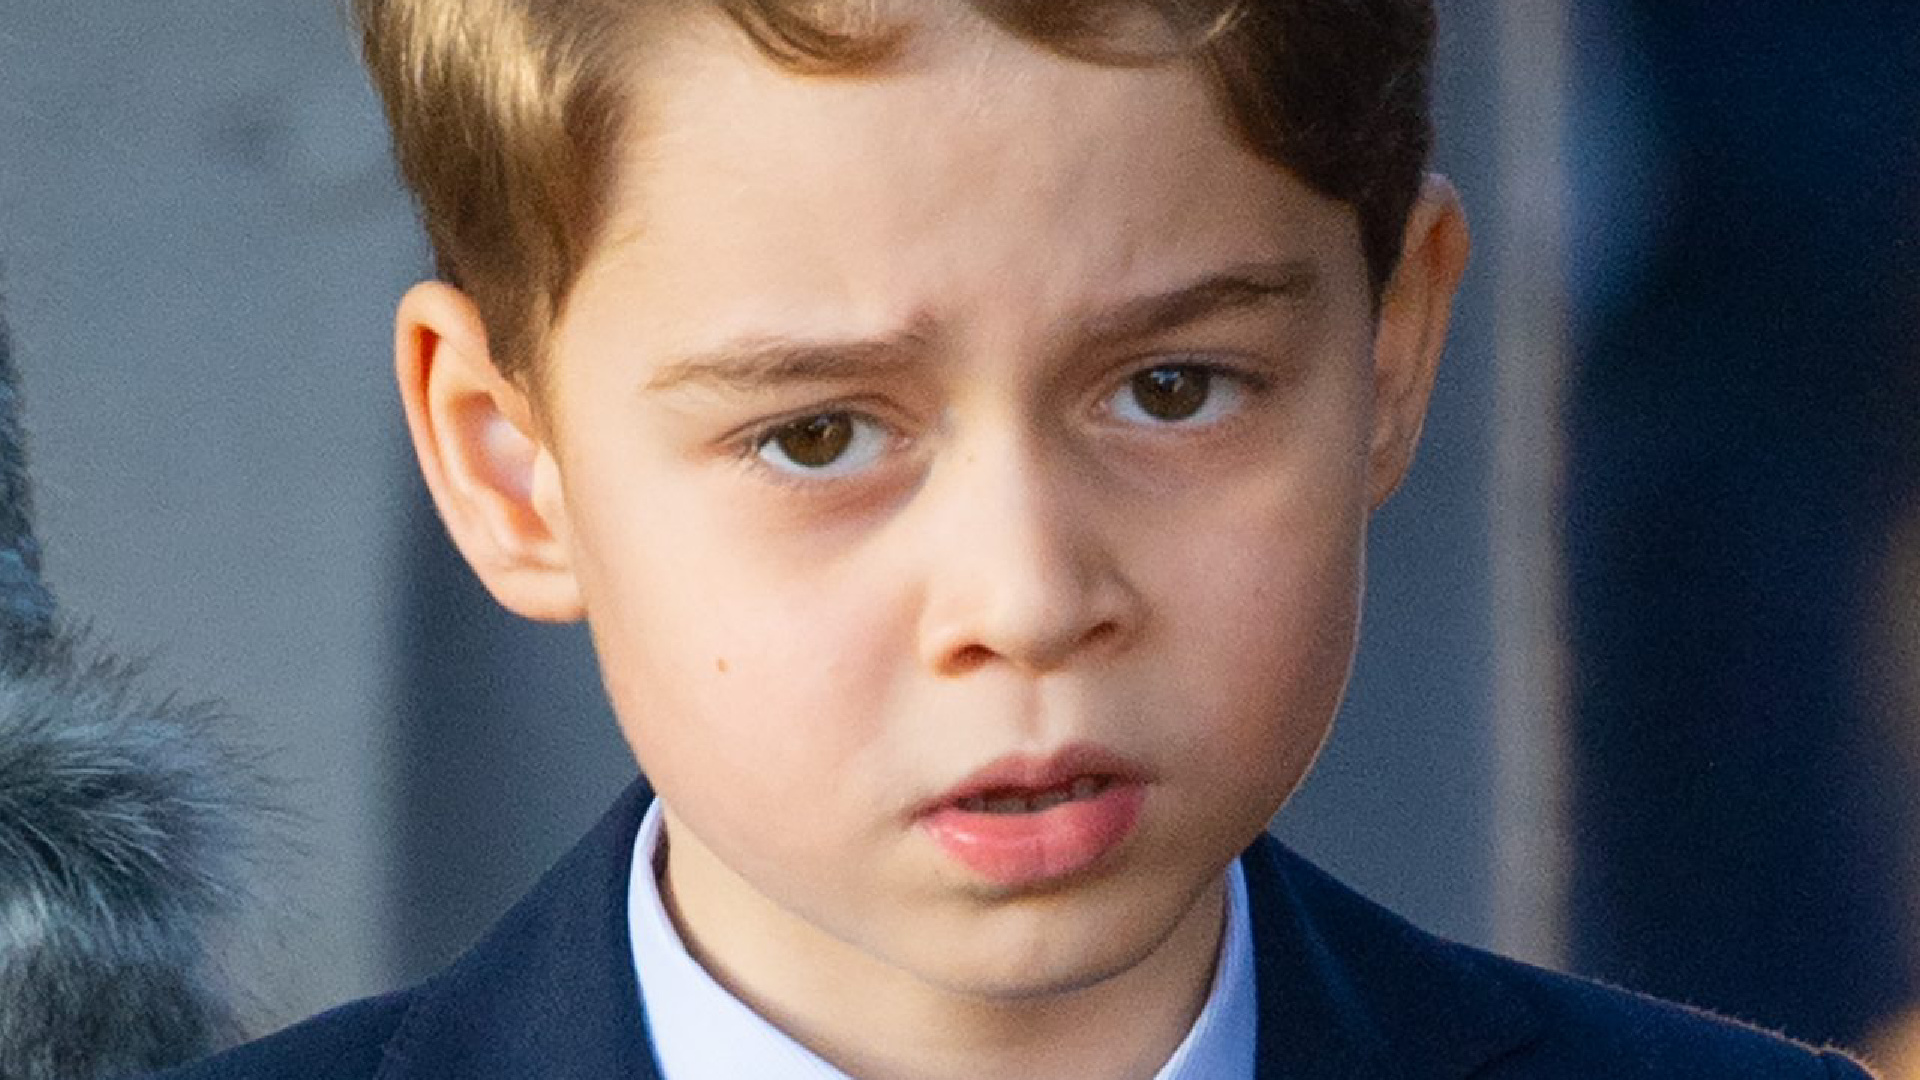 Why are experts saying Prince George will never be King?